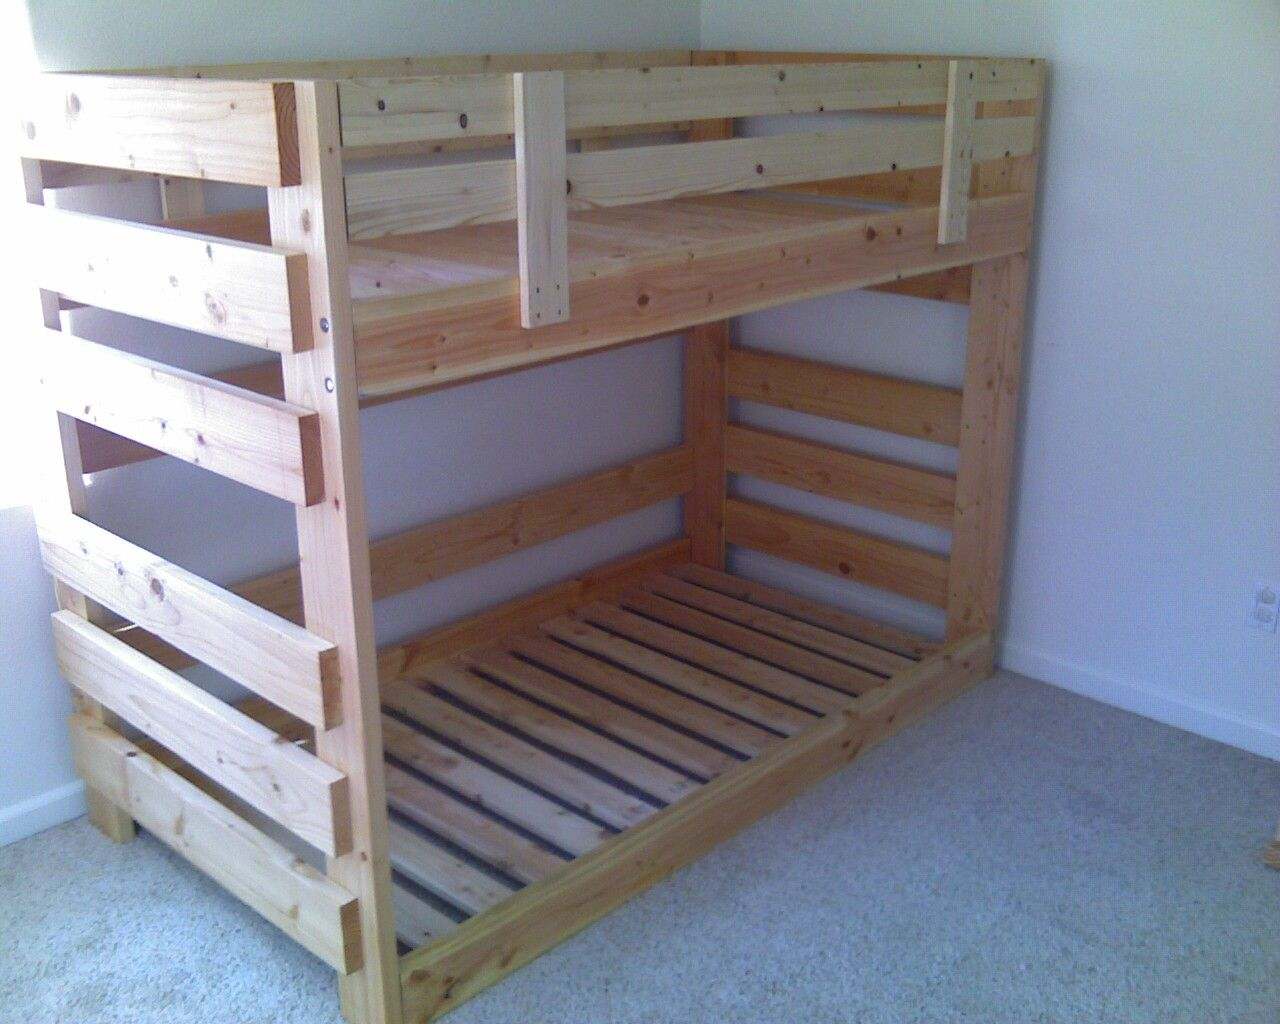 Pin By Julie Lewis Schot On Crafts In 2020 Pallet Bunk Beds Diy